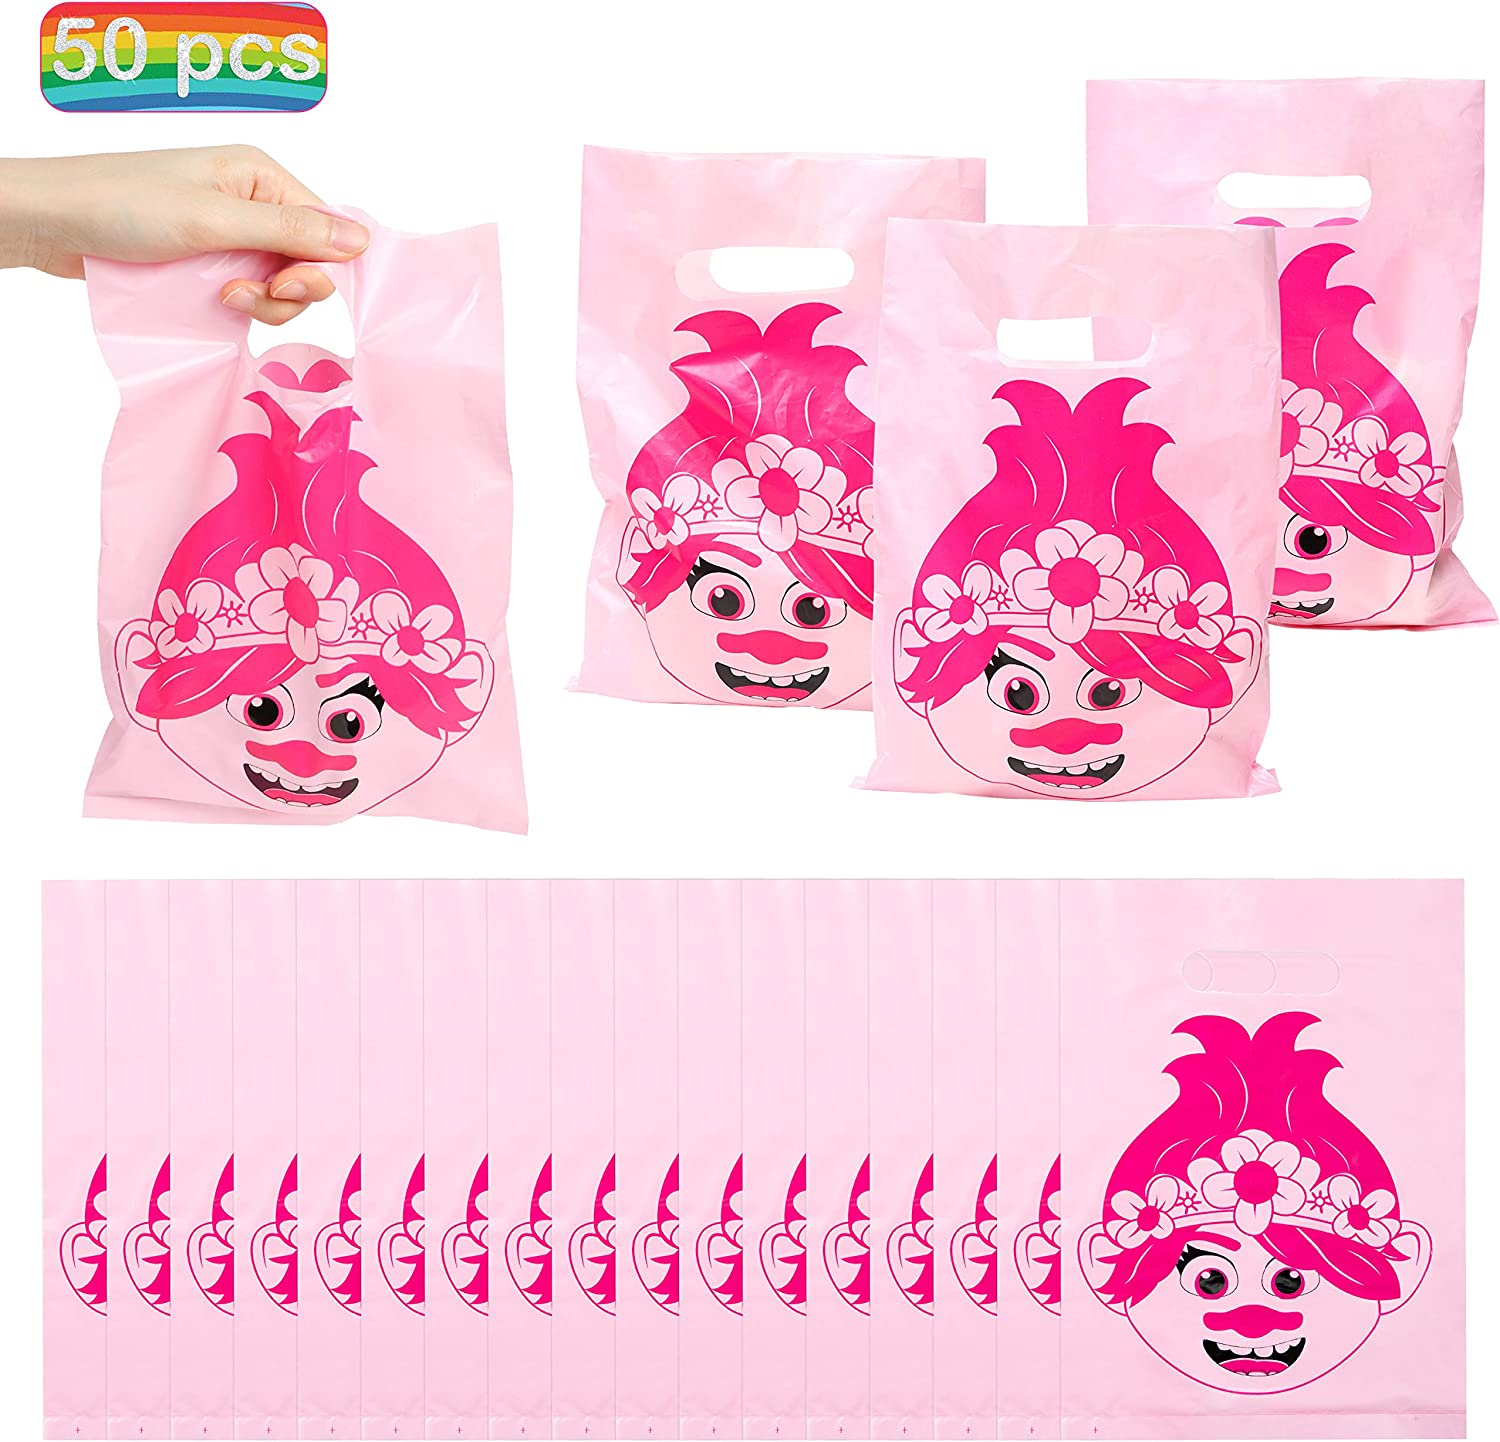 30 PCS TROLLS GOODIE BAGS PARTY FAVORS CANDY LOOT TREAT BIRTHDAY BAG DREAMWORKS